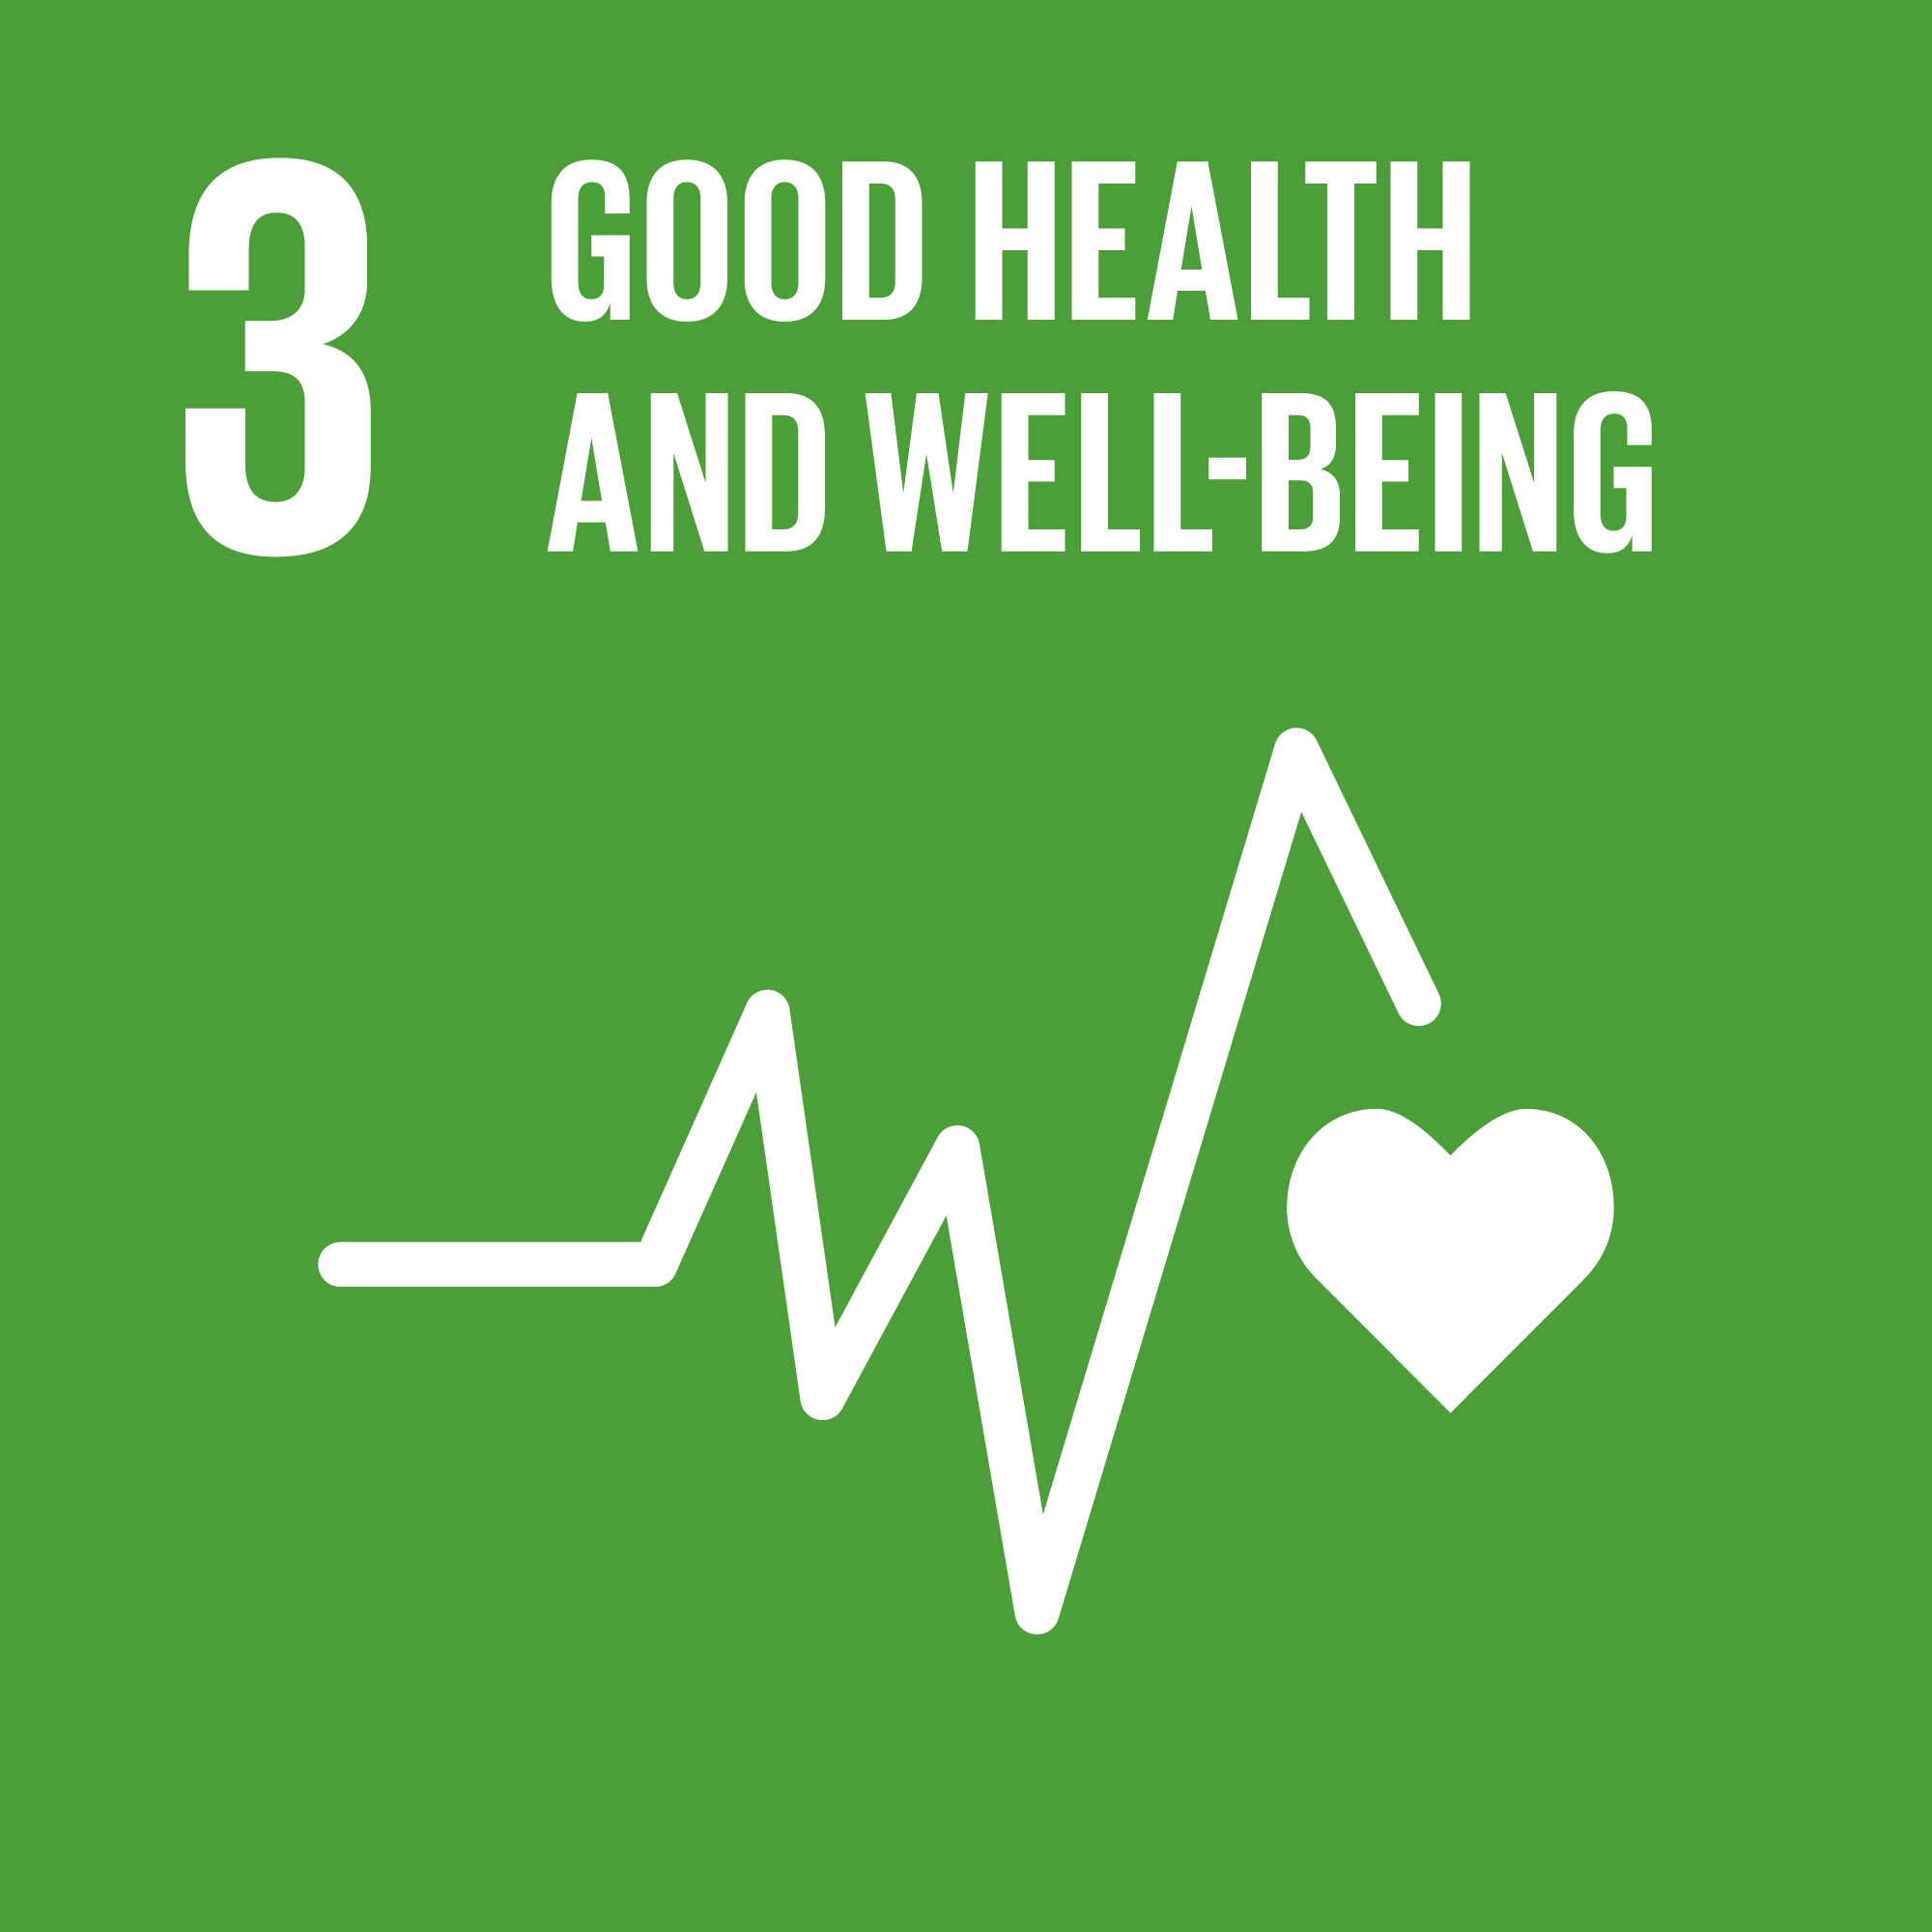 Agenda 2030 goal number 3 Good health and well-being